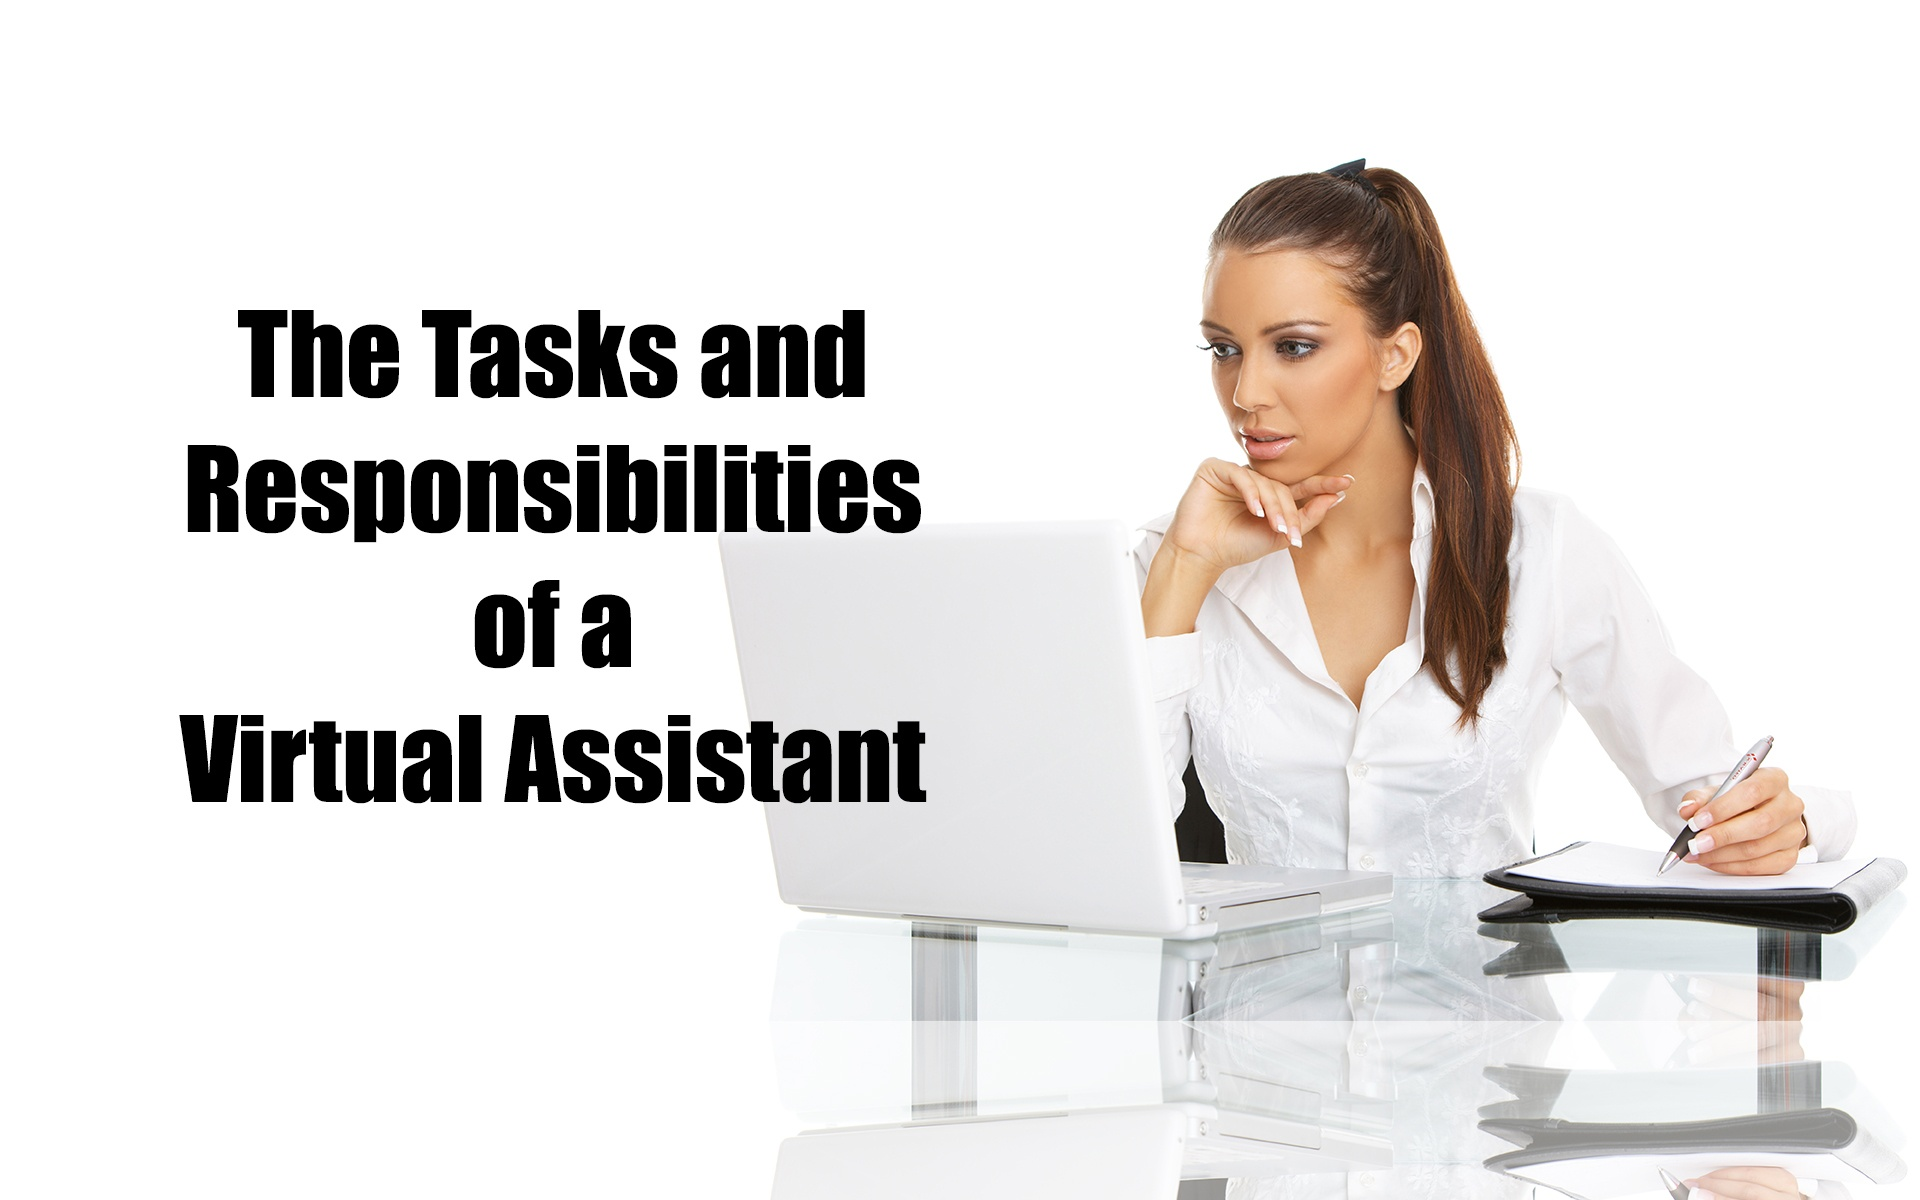 The Tasks and Responsibilities of a Virtual Assistant